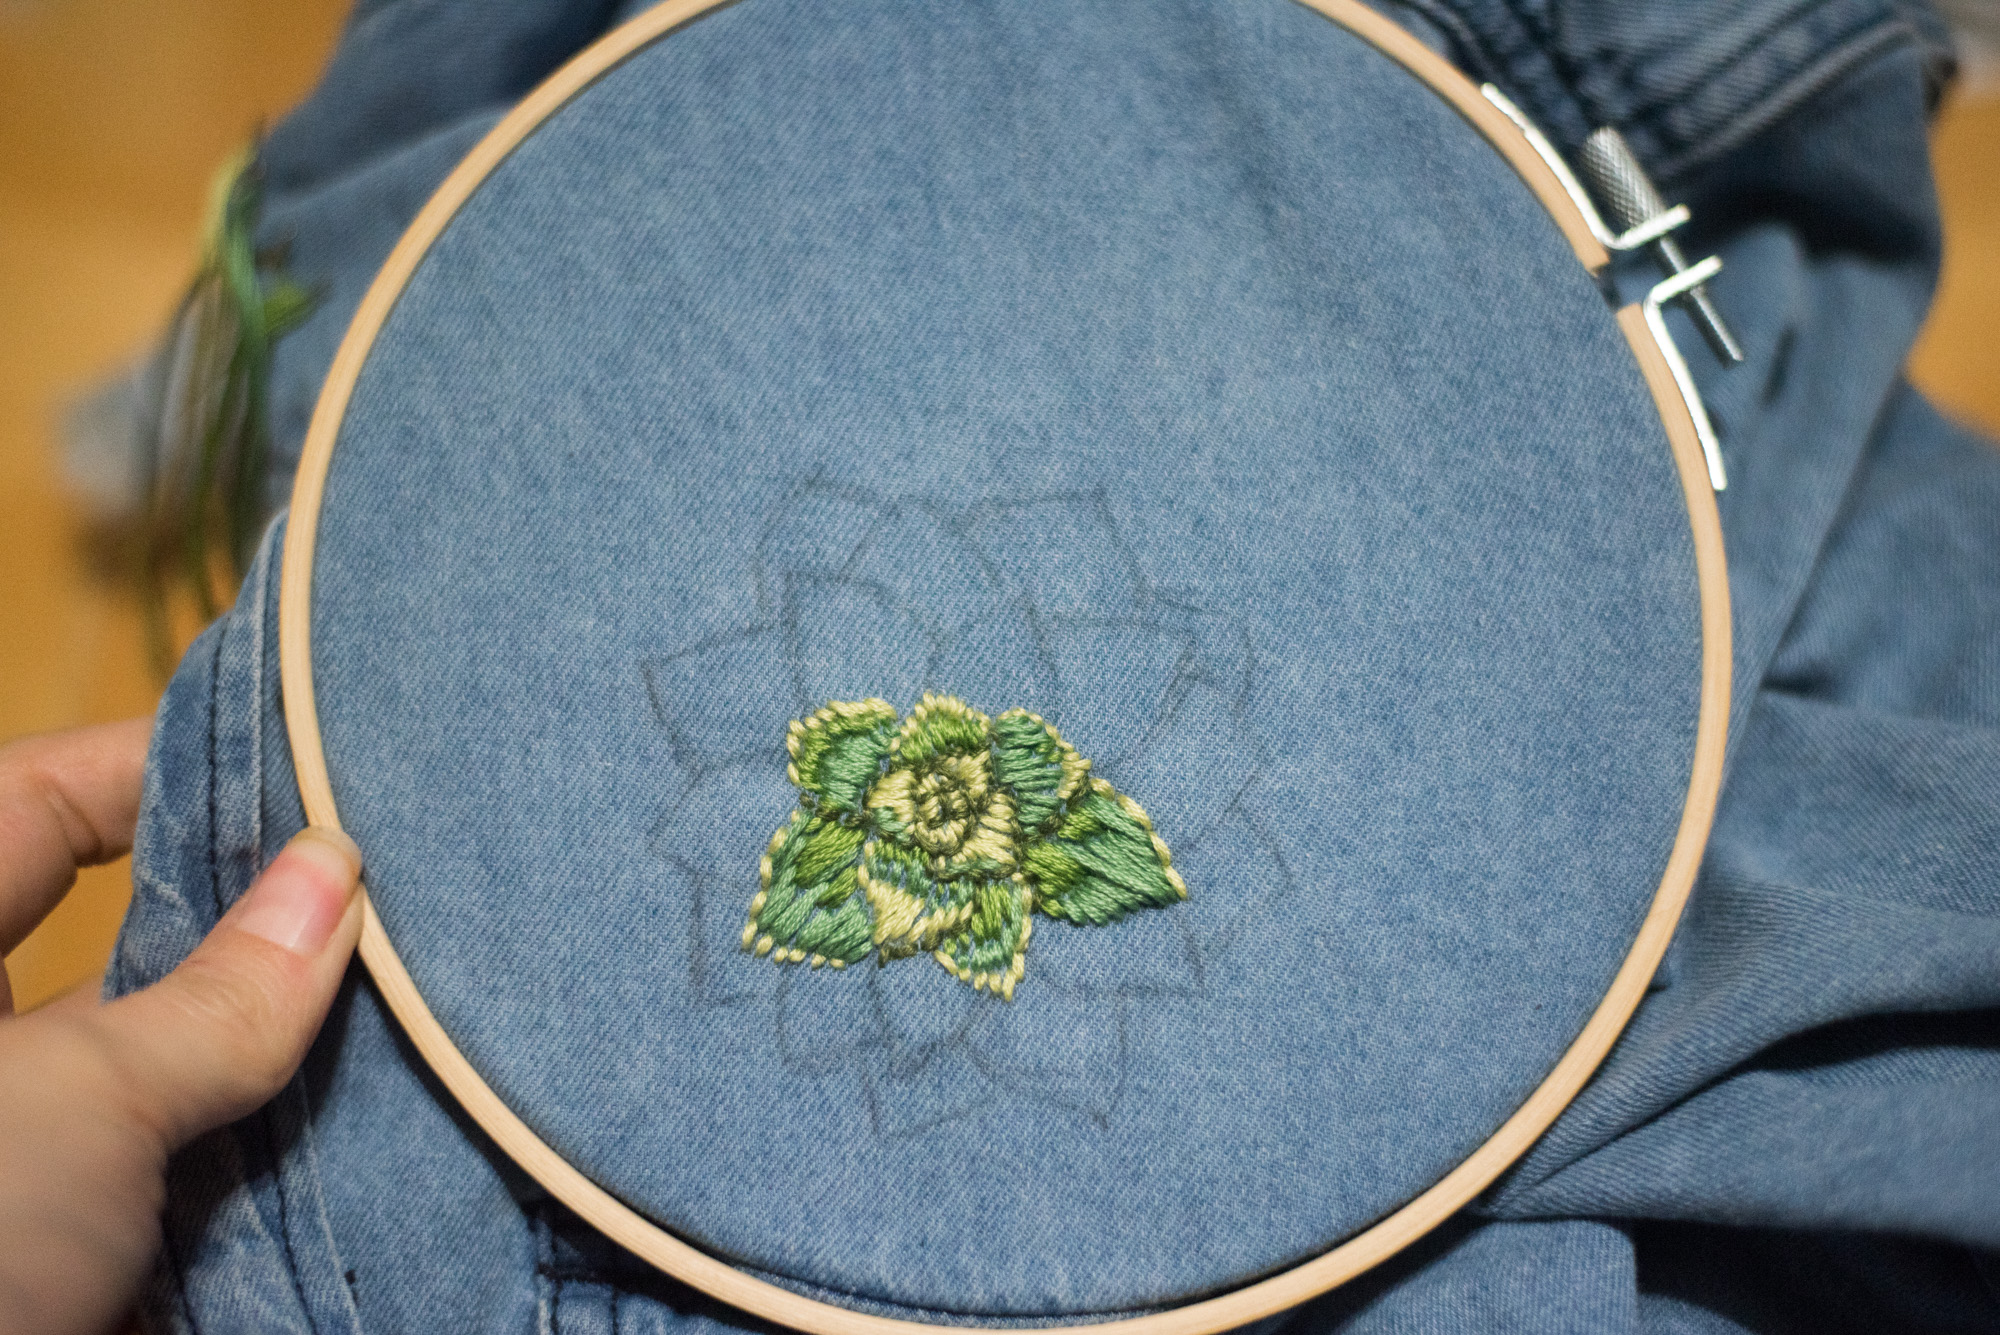 diy cactus embroidery